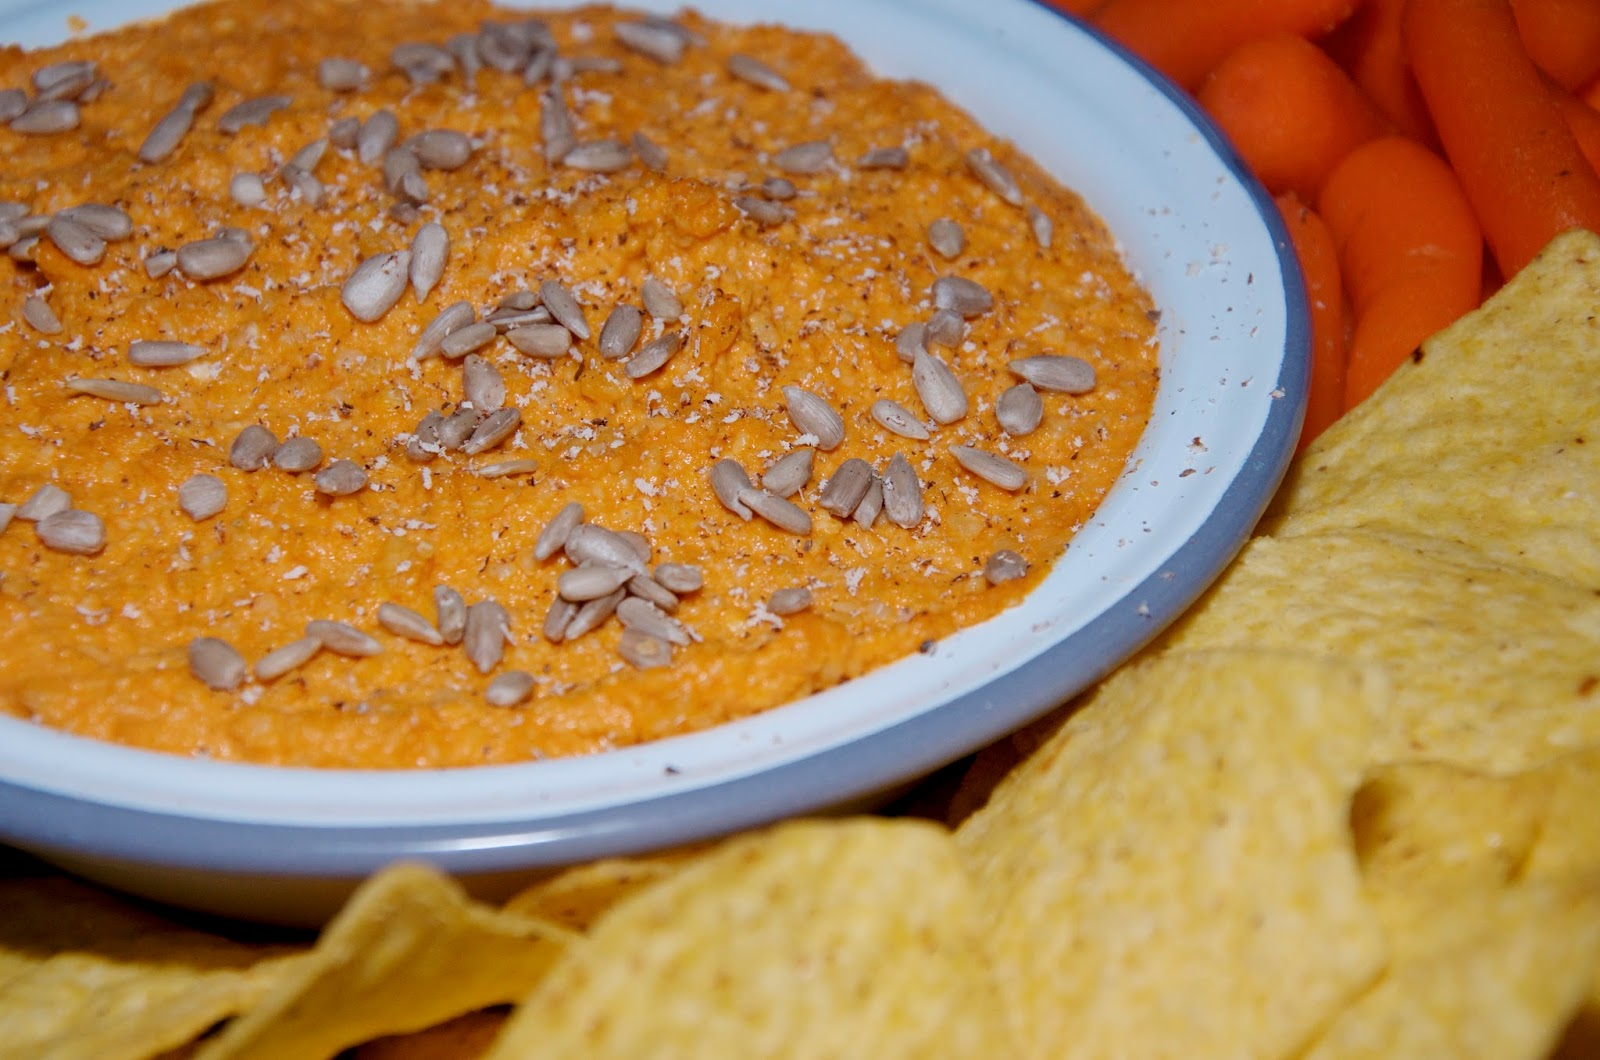 Buffalo Cashew Dip with sunflower seeds